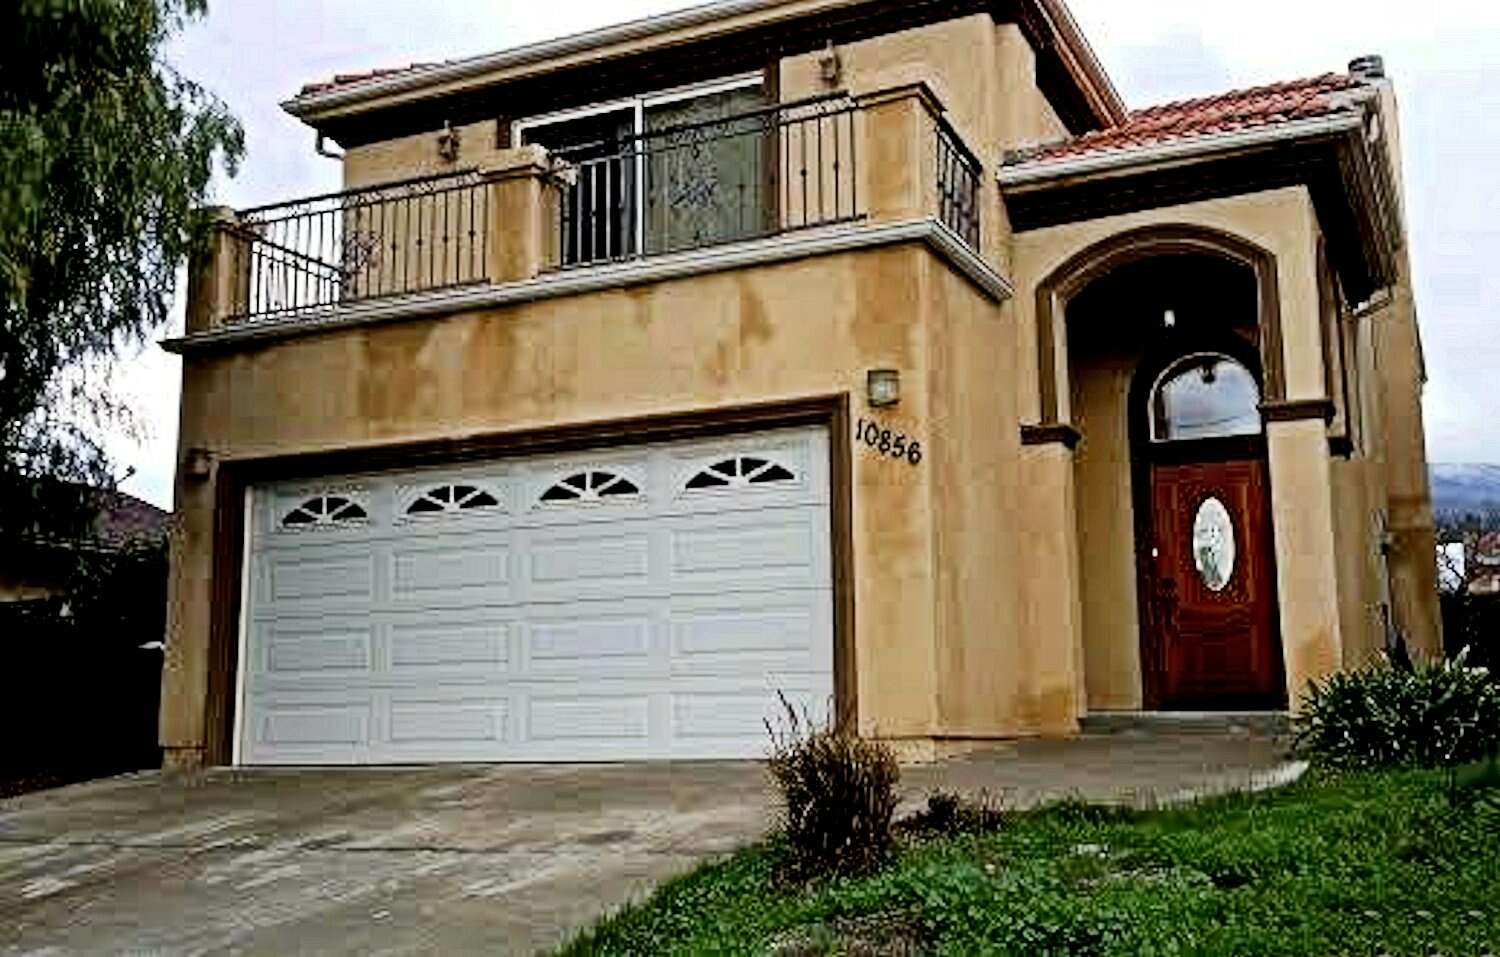 Single Family for Sale at 10856 Mcvine Ave Sunland, California 91040 United States